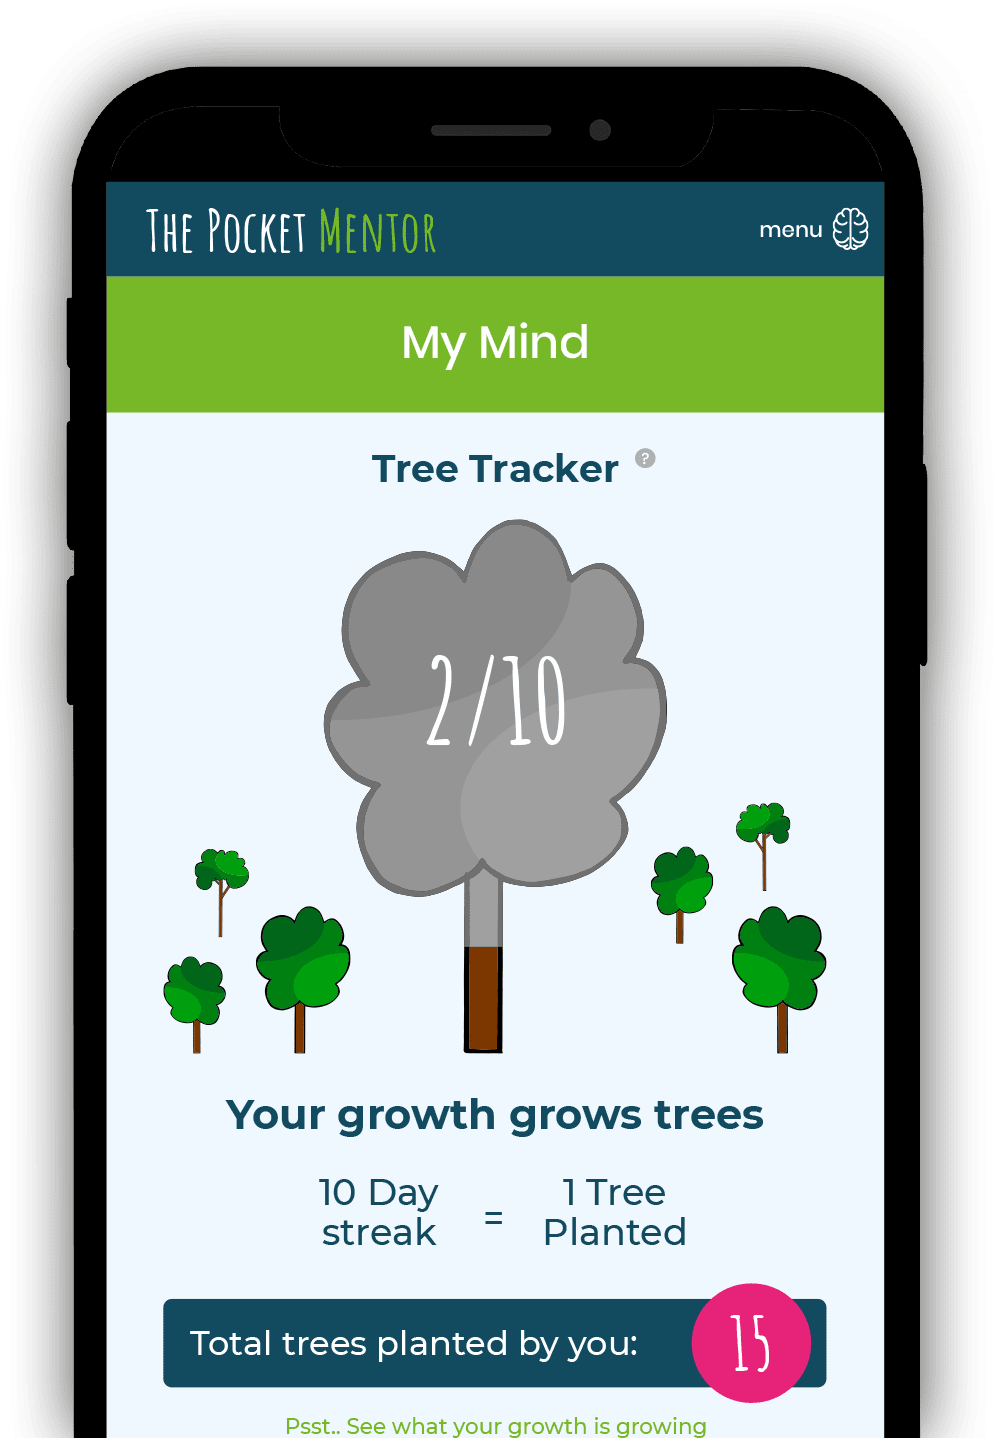 Your growth grows trees!